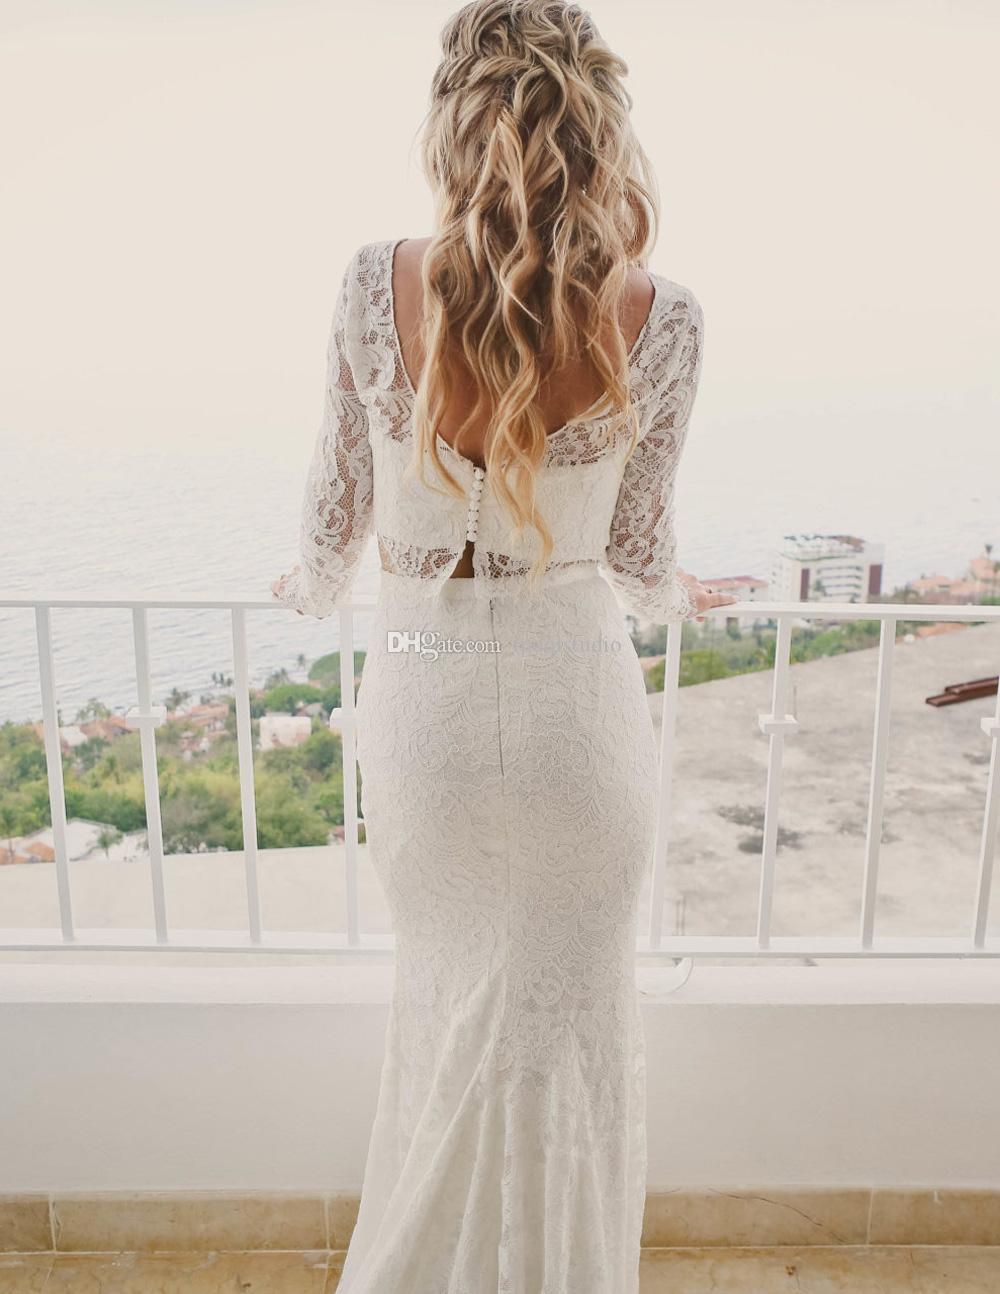 Fairy Two Pieces Lace Wedding Dresses Long Sleeves Sweep Train Lace Mermaid Wedding Dresses Bridal Gowns 2018 New Arrival